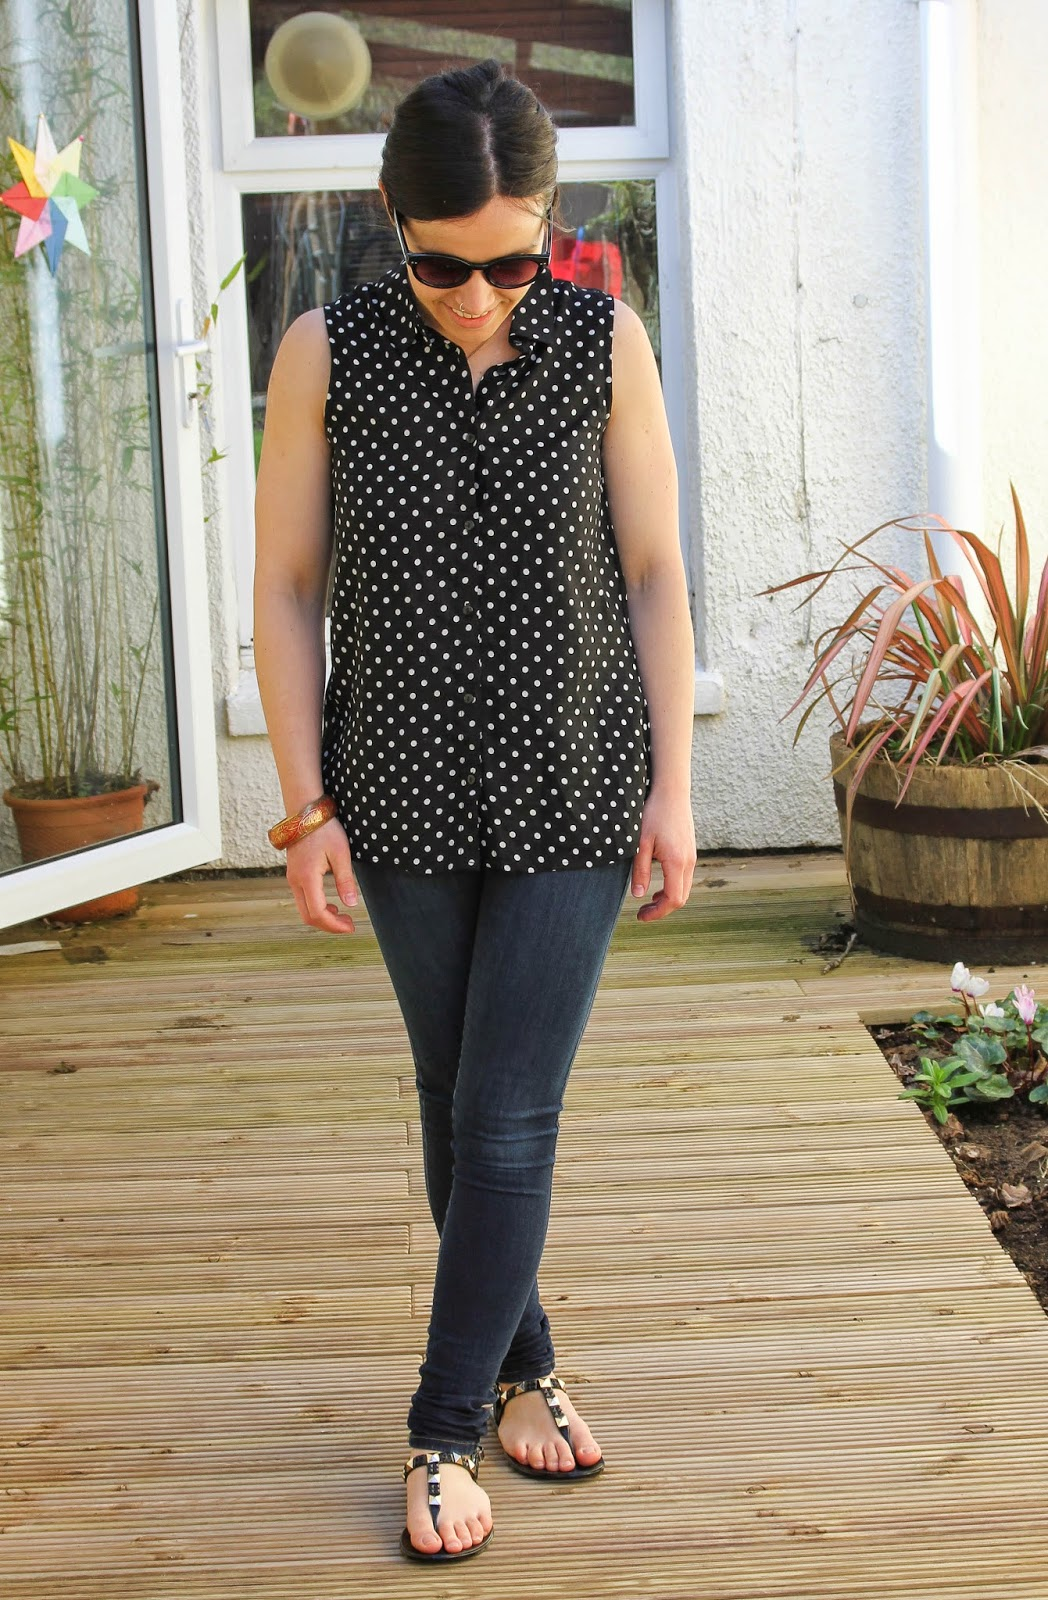 b5525f57c0f9 Side Street Style  Polka Dots and Jelly shoe Giveaway